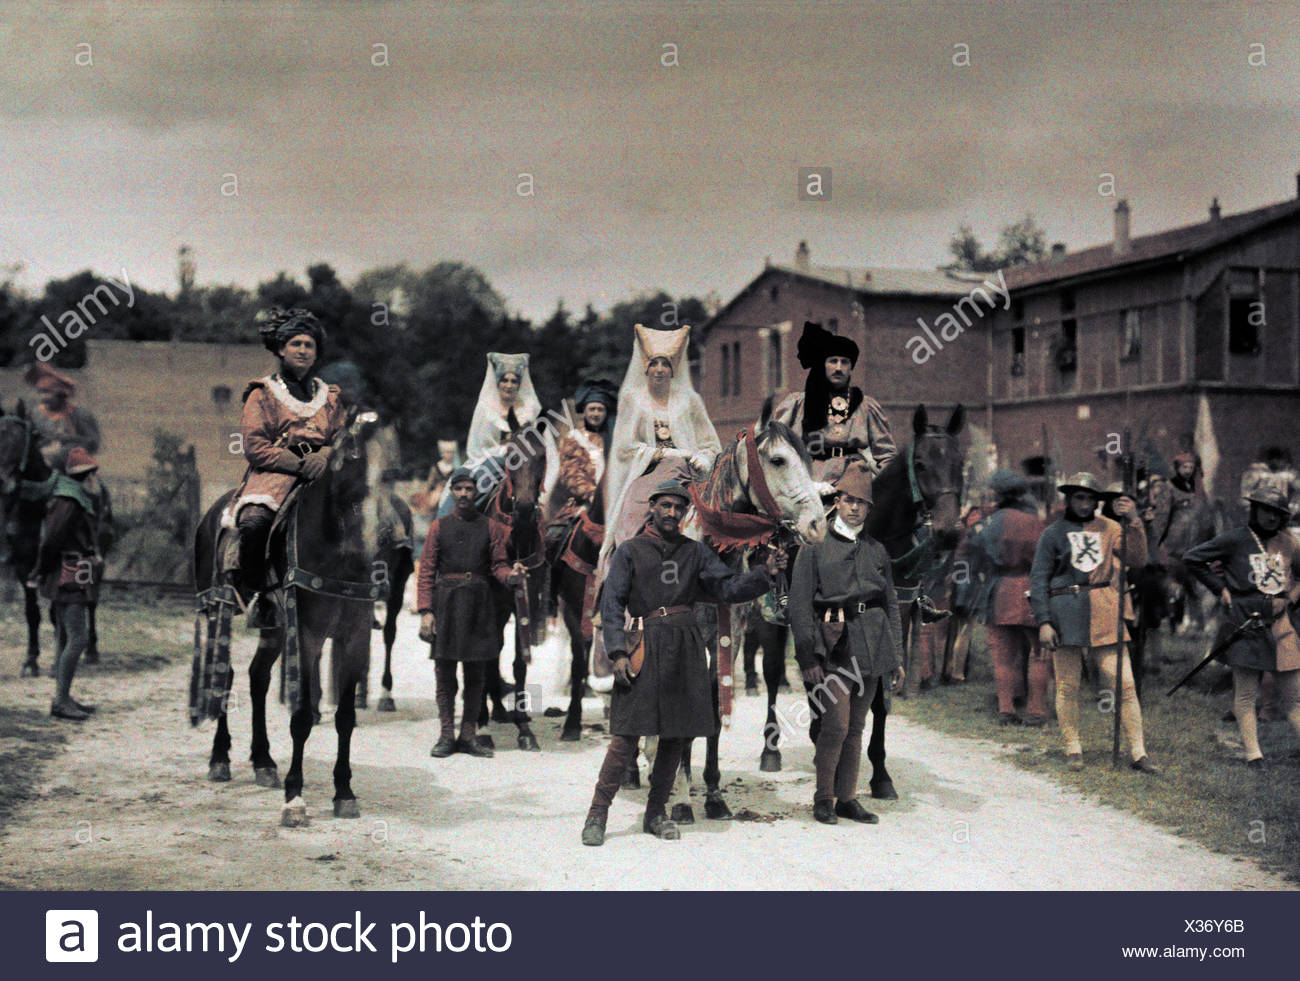 Attendees of Joan of Arc Festival conjure an image of medieval France. - Stock Image